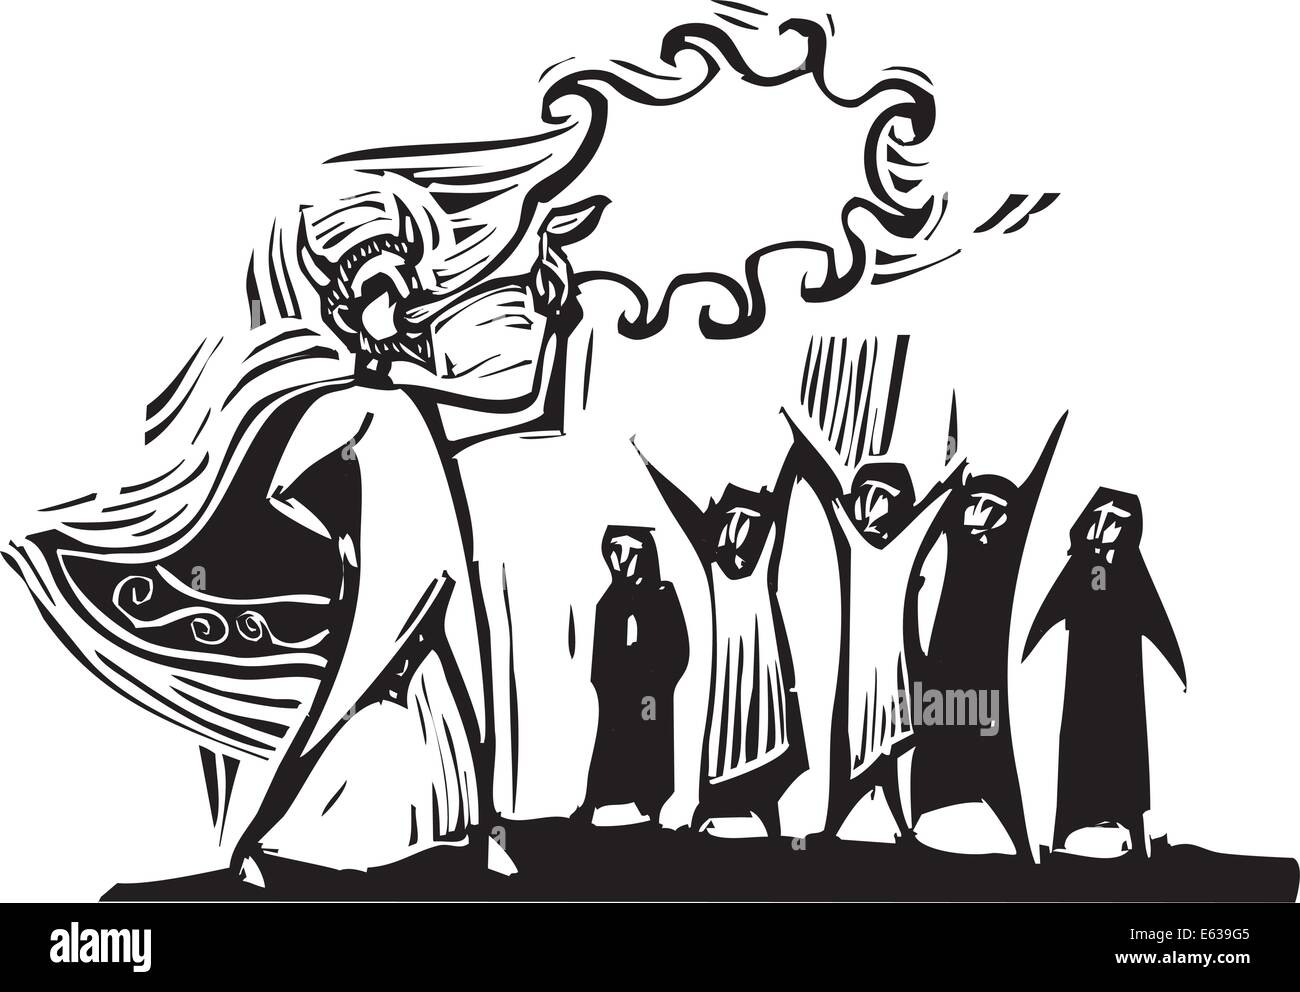 Woodcut style image of a man in a devil costume blowing fire at a circus. - Stock Vector